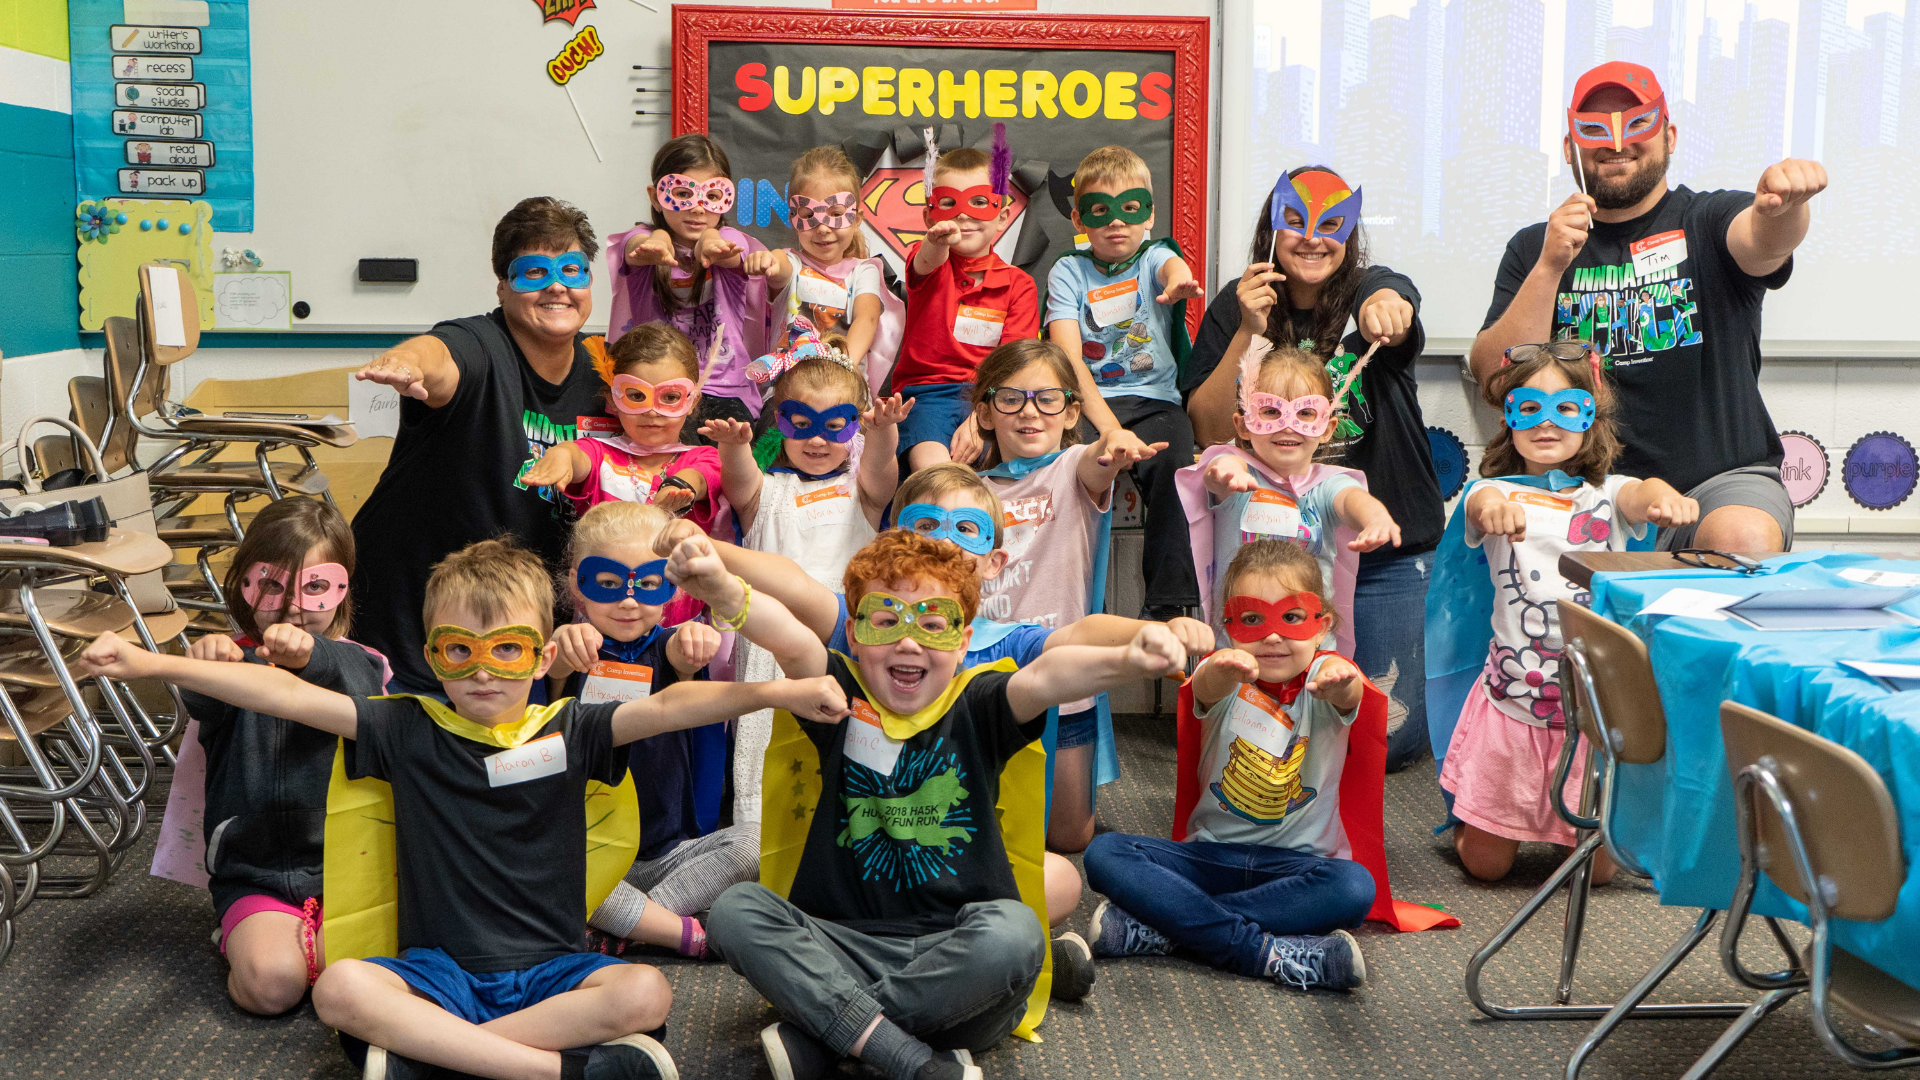 A group of students pose while dressed as superheroes in masks and capes.